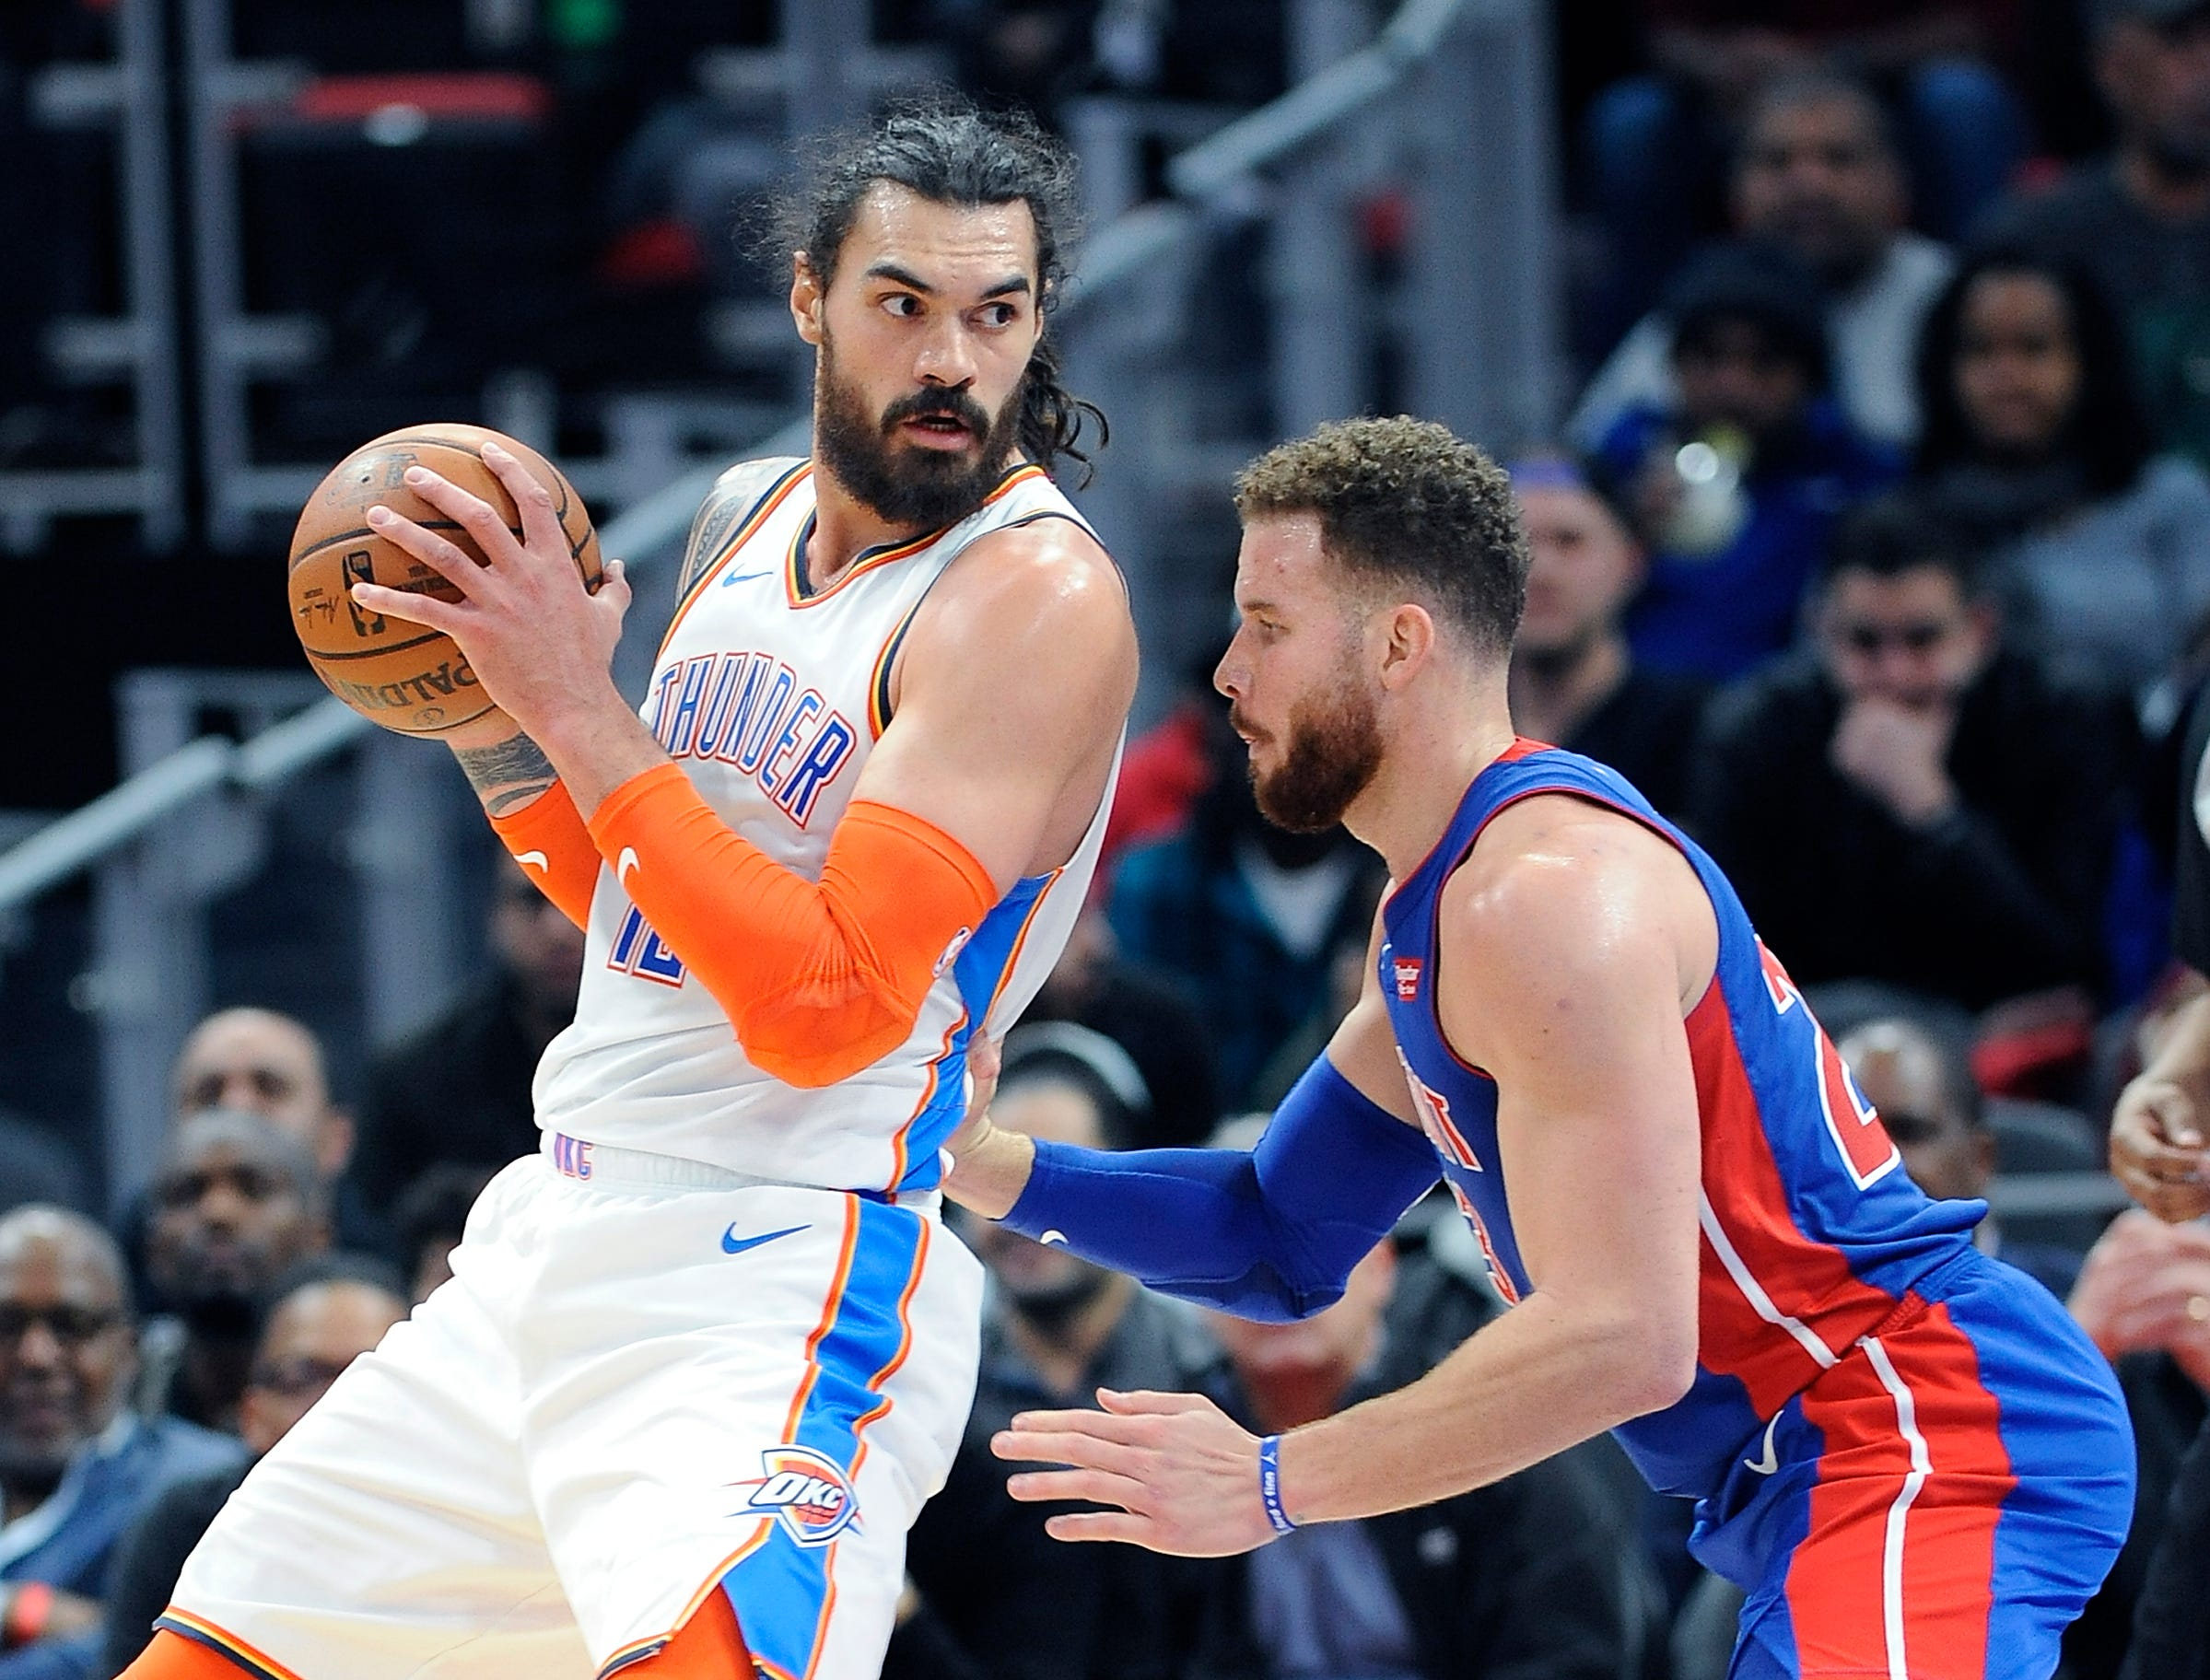 Thunder's Steven Adams looks for room around Pistons' Blake Griffin in the second quarter.